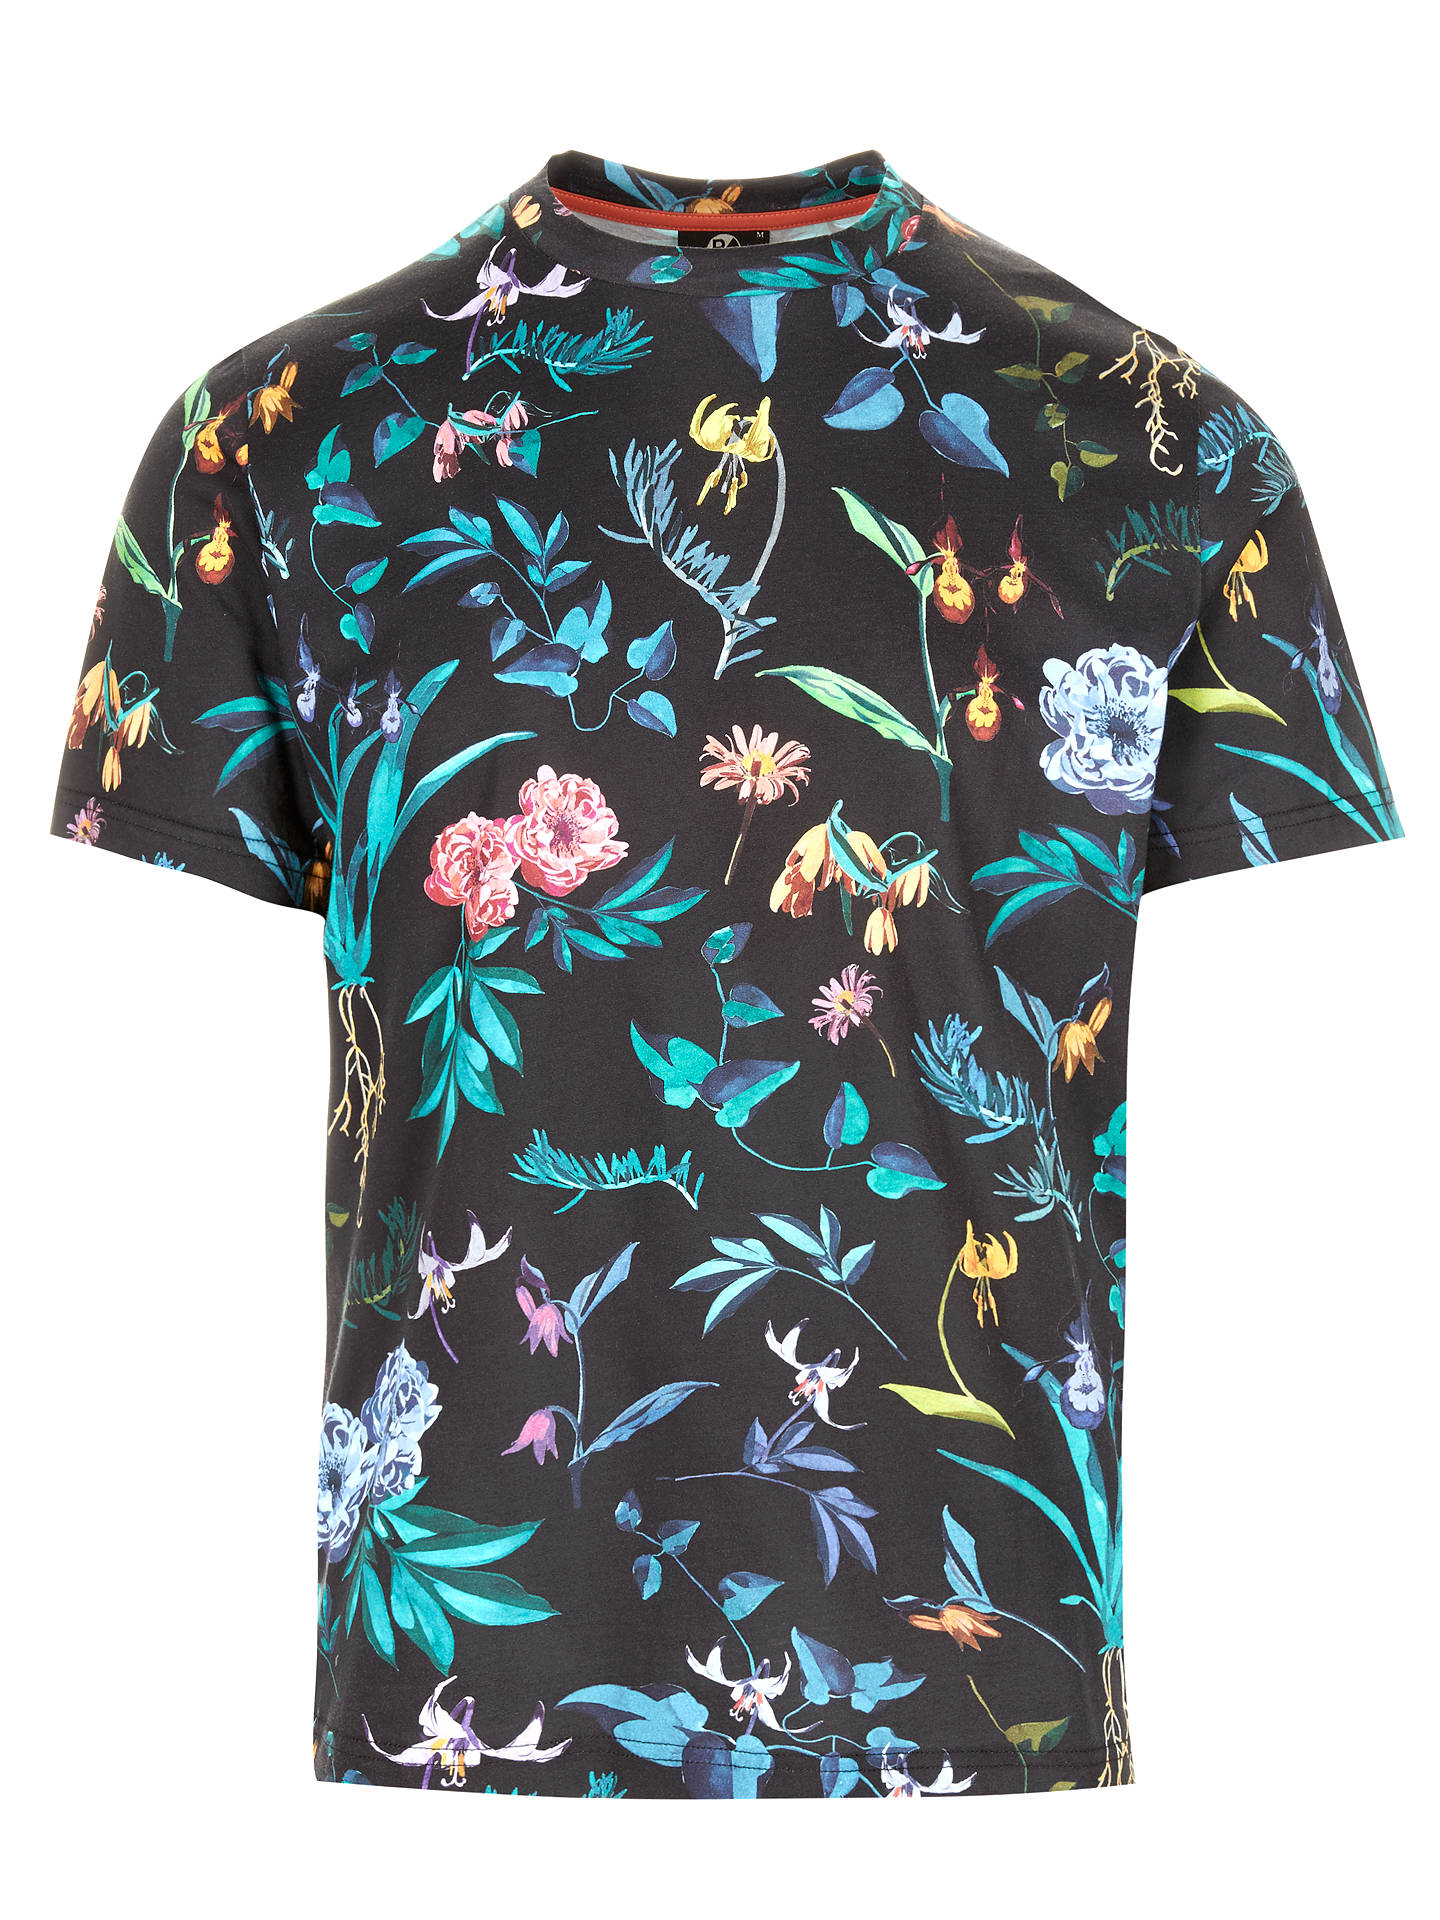 Ps Paul Smith Alpine Floral T Shirt Black At John Lewis Partners Polo Buyps M Online Johnlewis